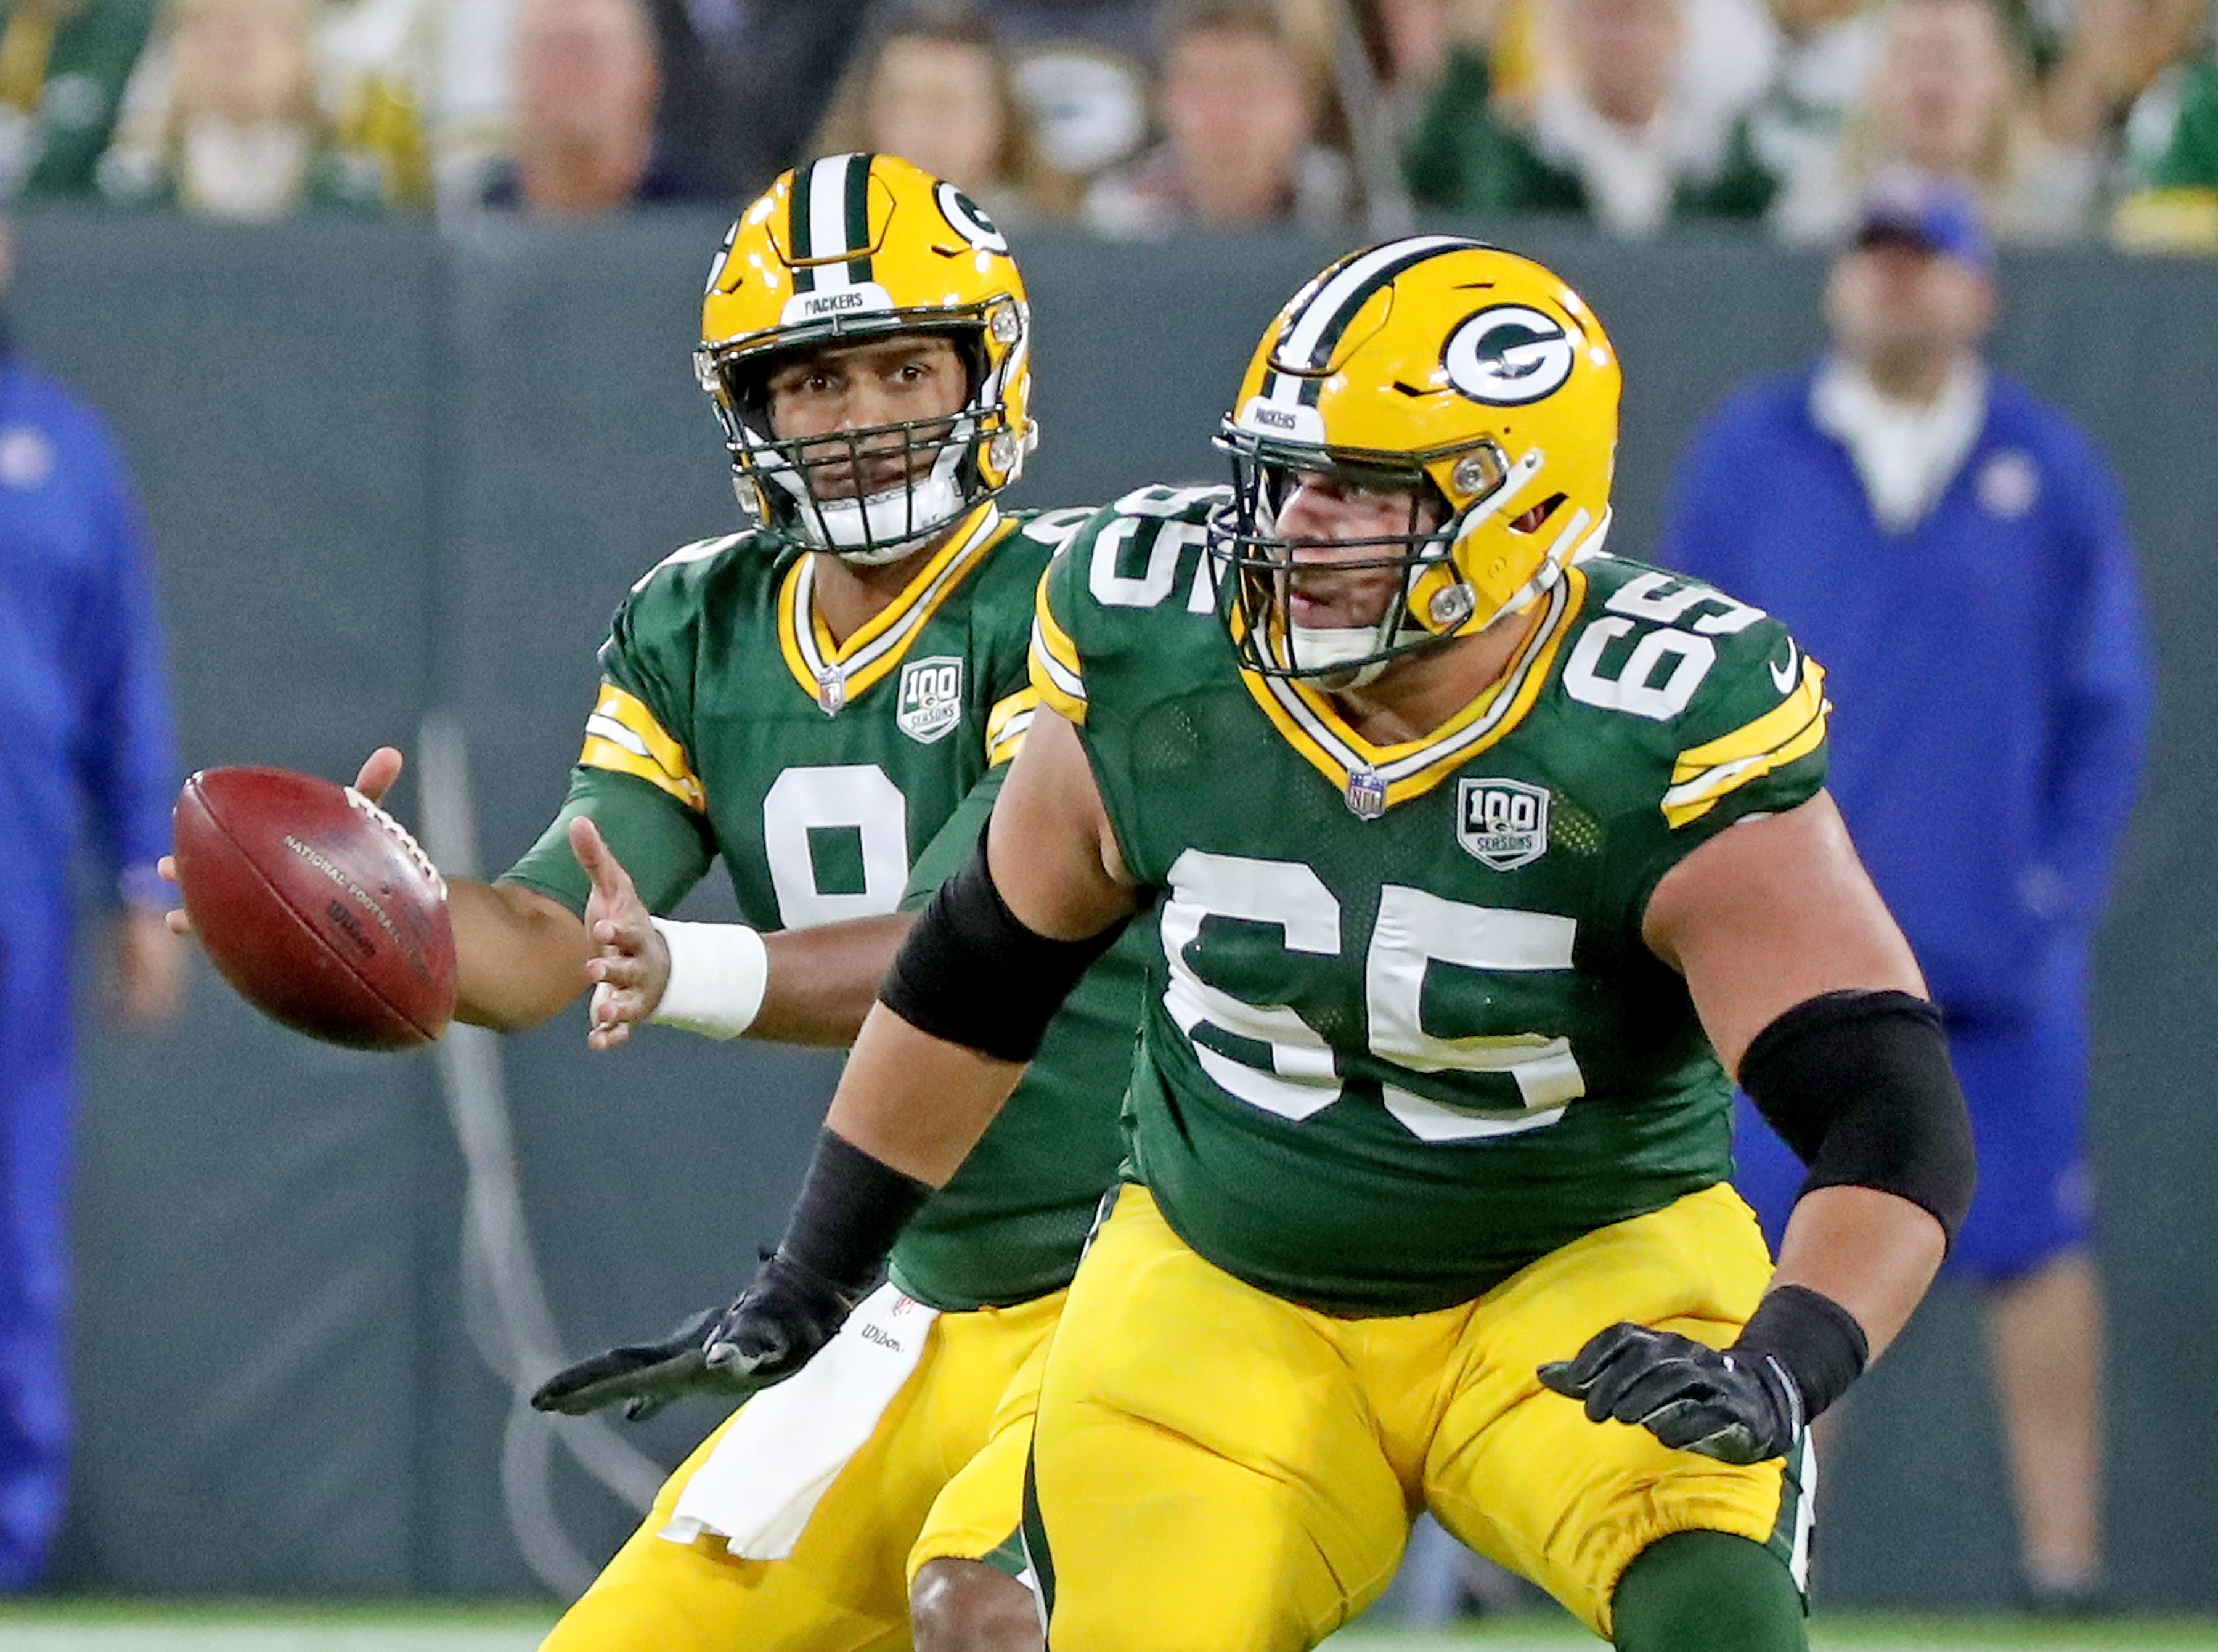 Green Bay Packers quarterback DeShone Kizer (9) takes the snap as offensive guard Lane Taylor (65) blocks against the Chicago Bears Sunday, September 9, 2018 at Lambeau Field in Green Bay, Wis. Jim Matthews/USA TODAY NETWORK-Wisconsin